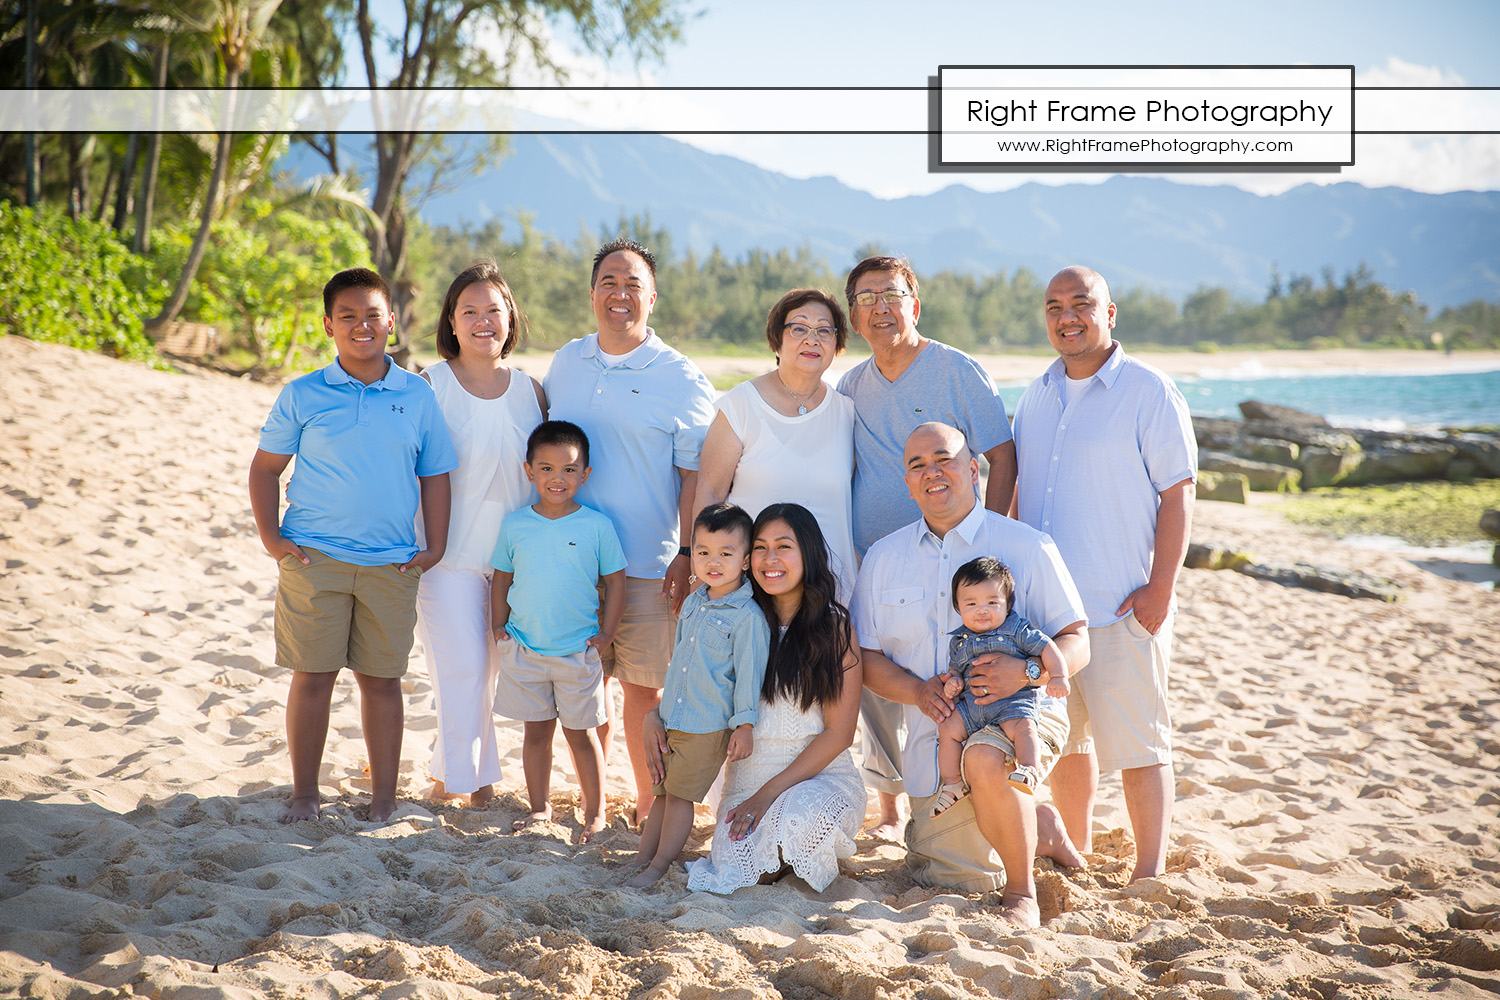 FAMILY REUNION PHOTOGRAPHY North Shore Oahu Hawaii